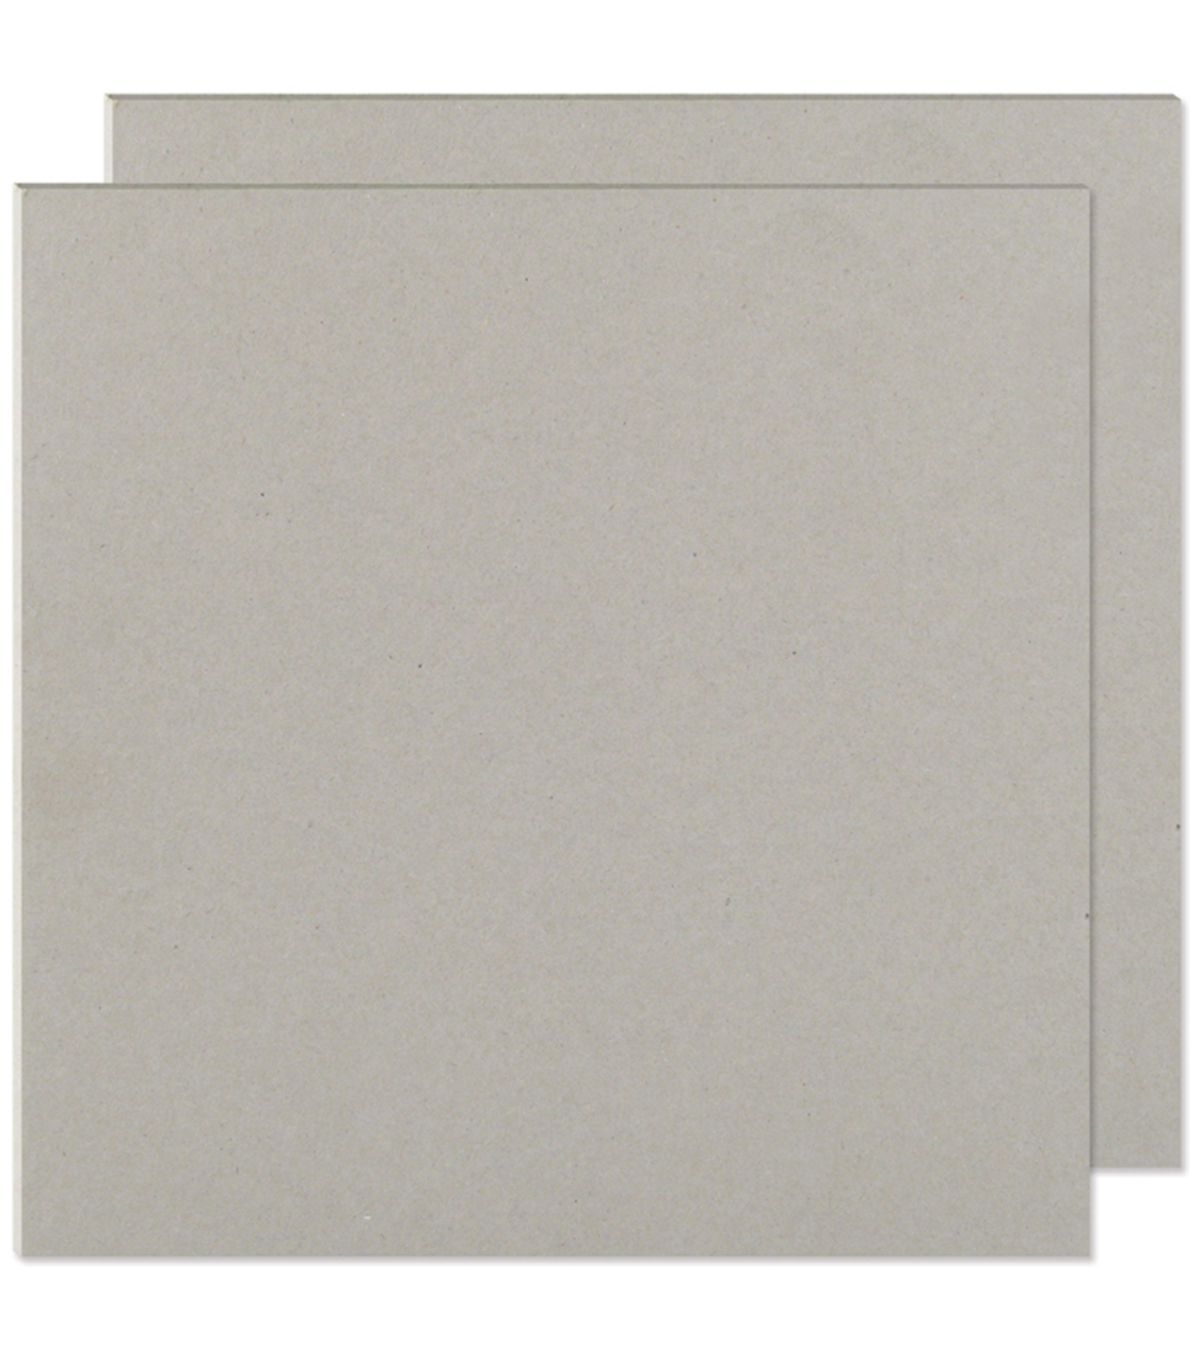 We R Memory Keepers 8\u0022x8\u0022 Cinch Book Board-2PK/Gray